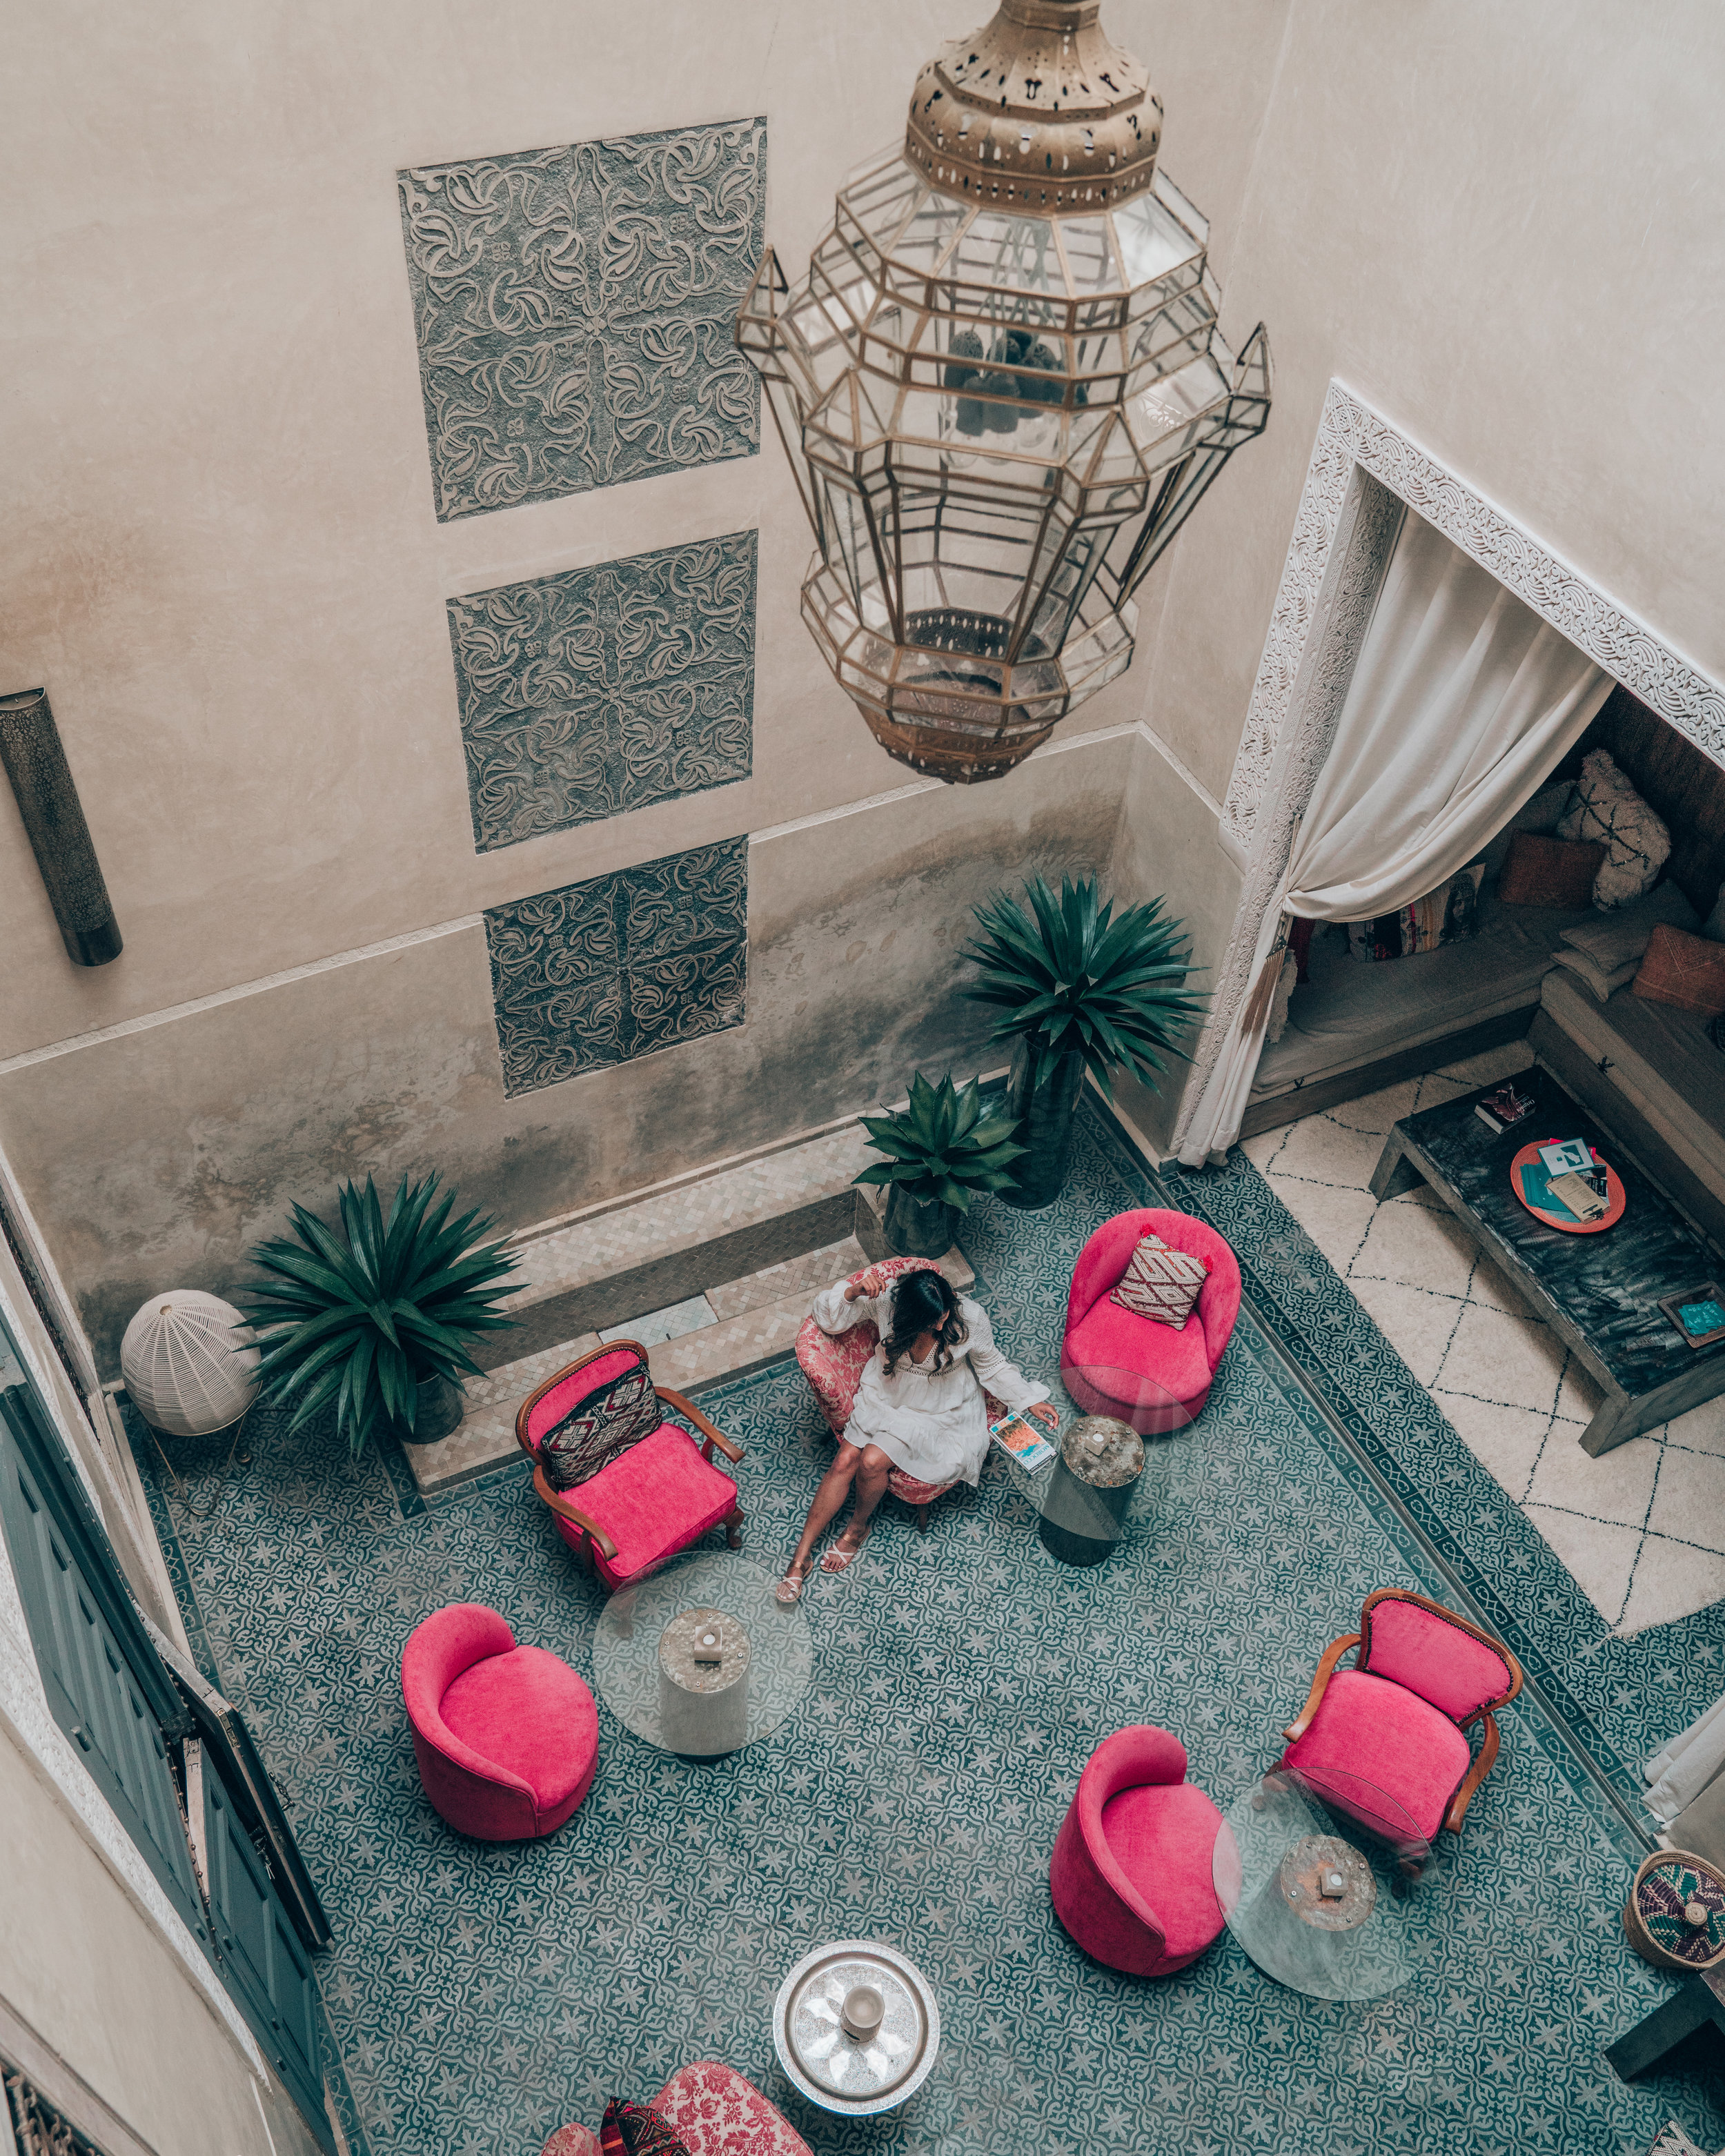 Where to Stay in Fes, Morocco: Riad Anata